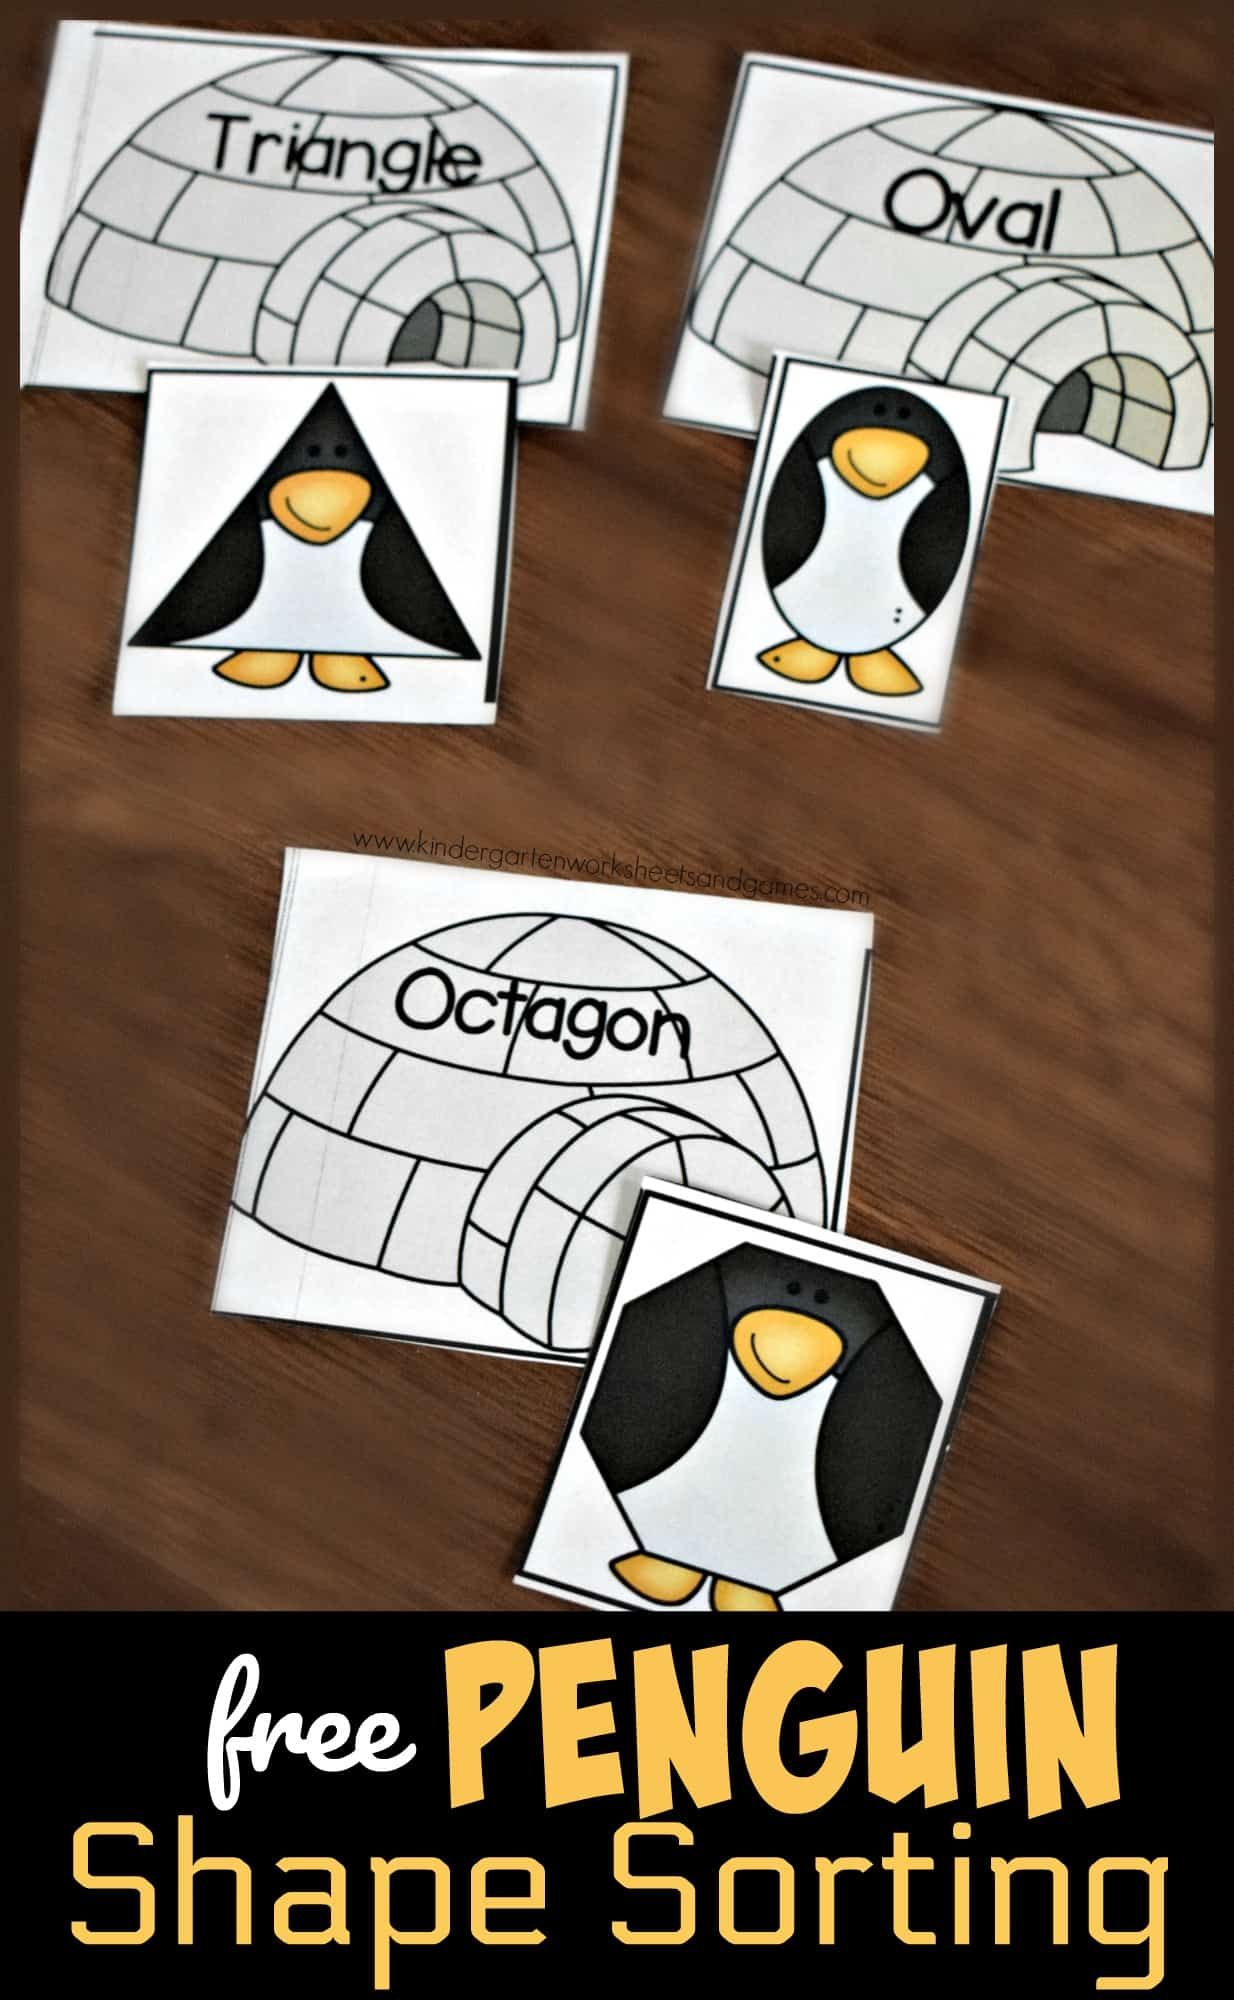 Free Penguin Shape Sorting Activity Shapes Penguins